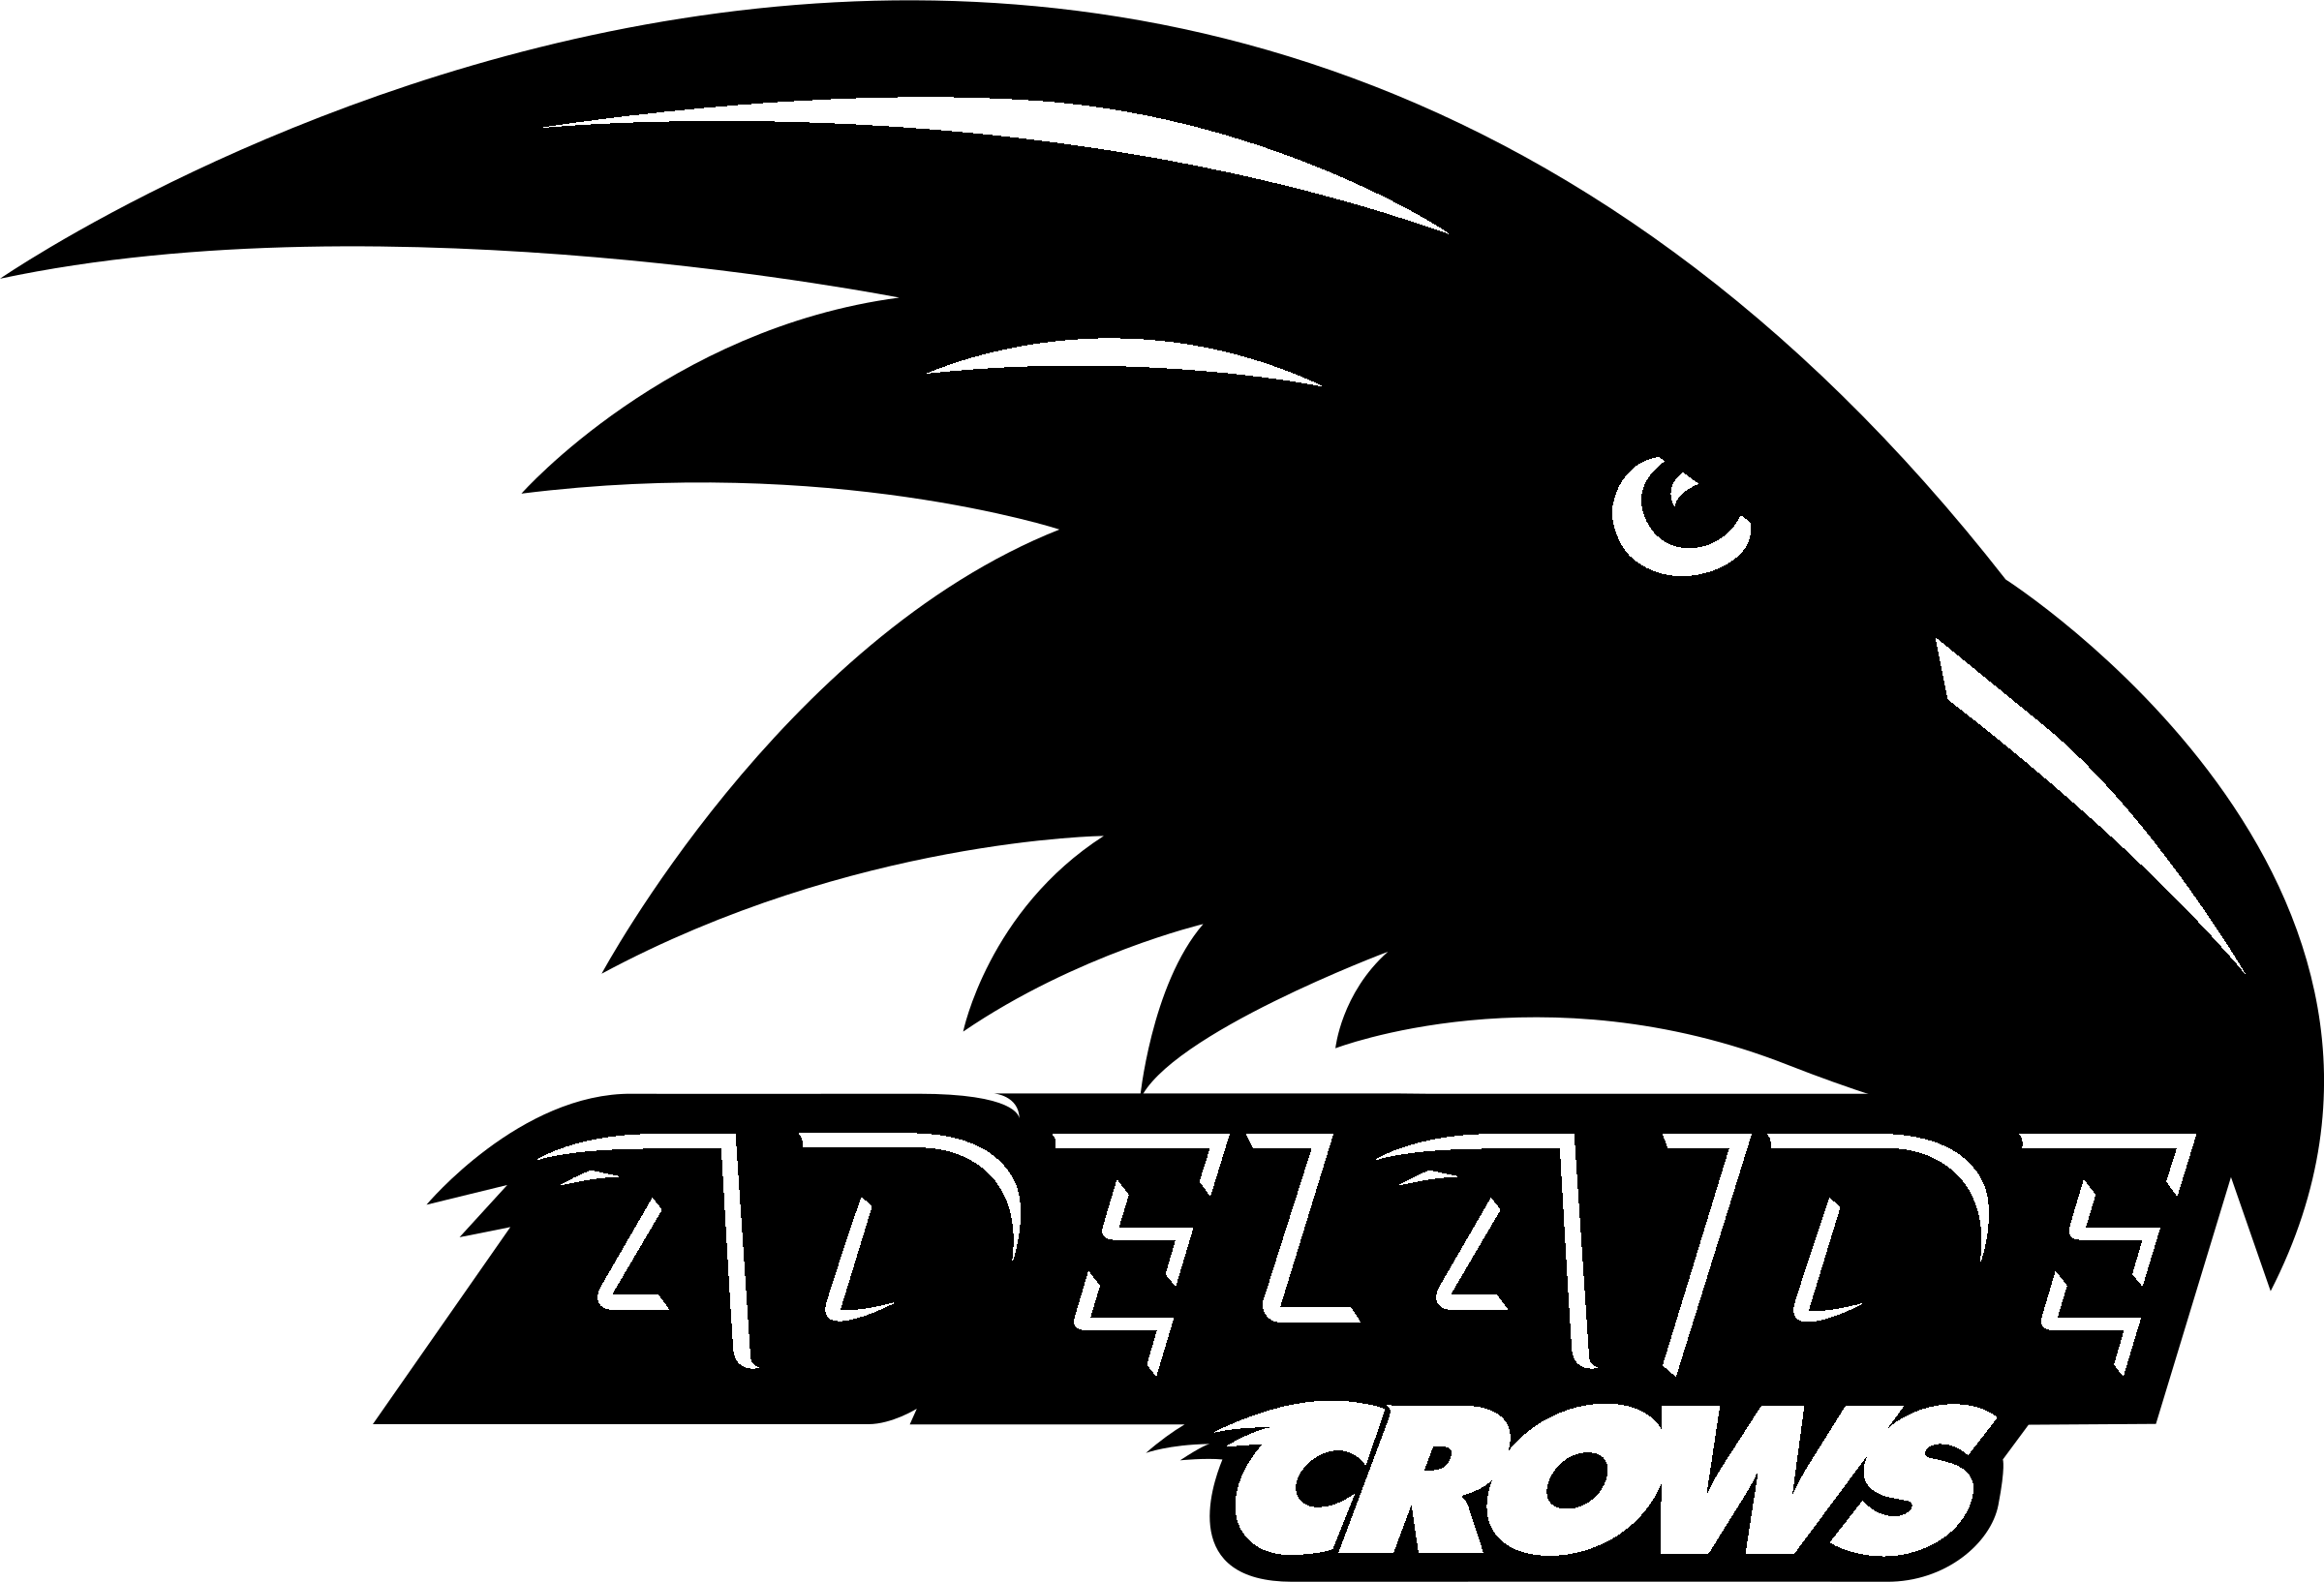 Adelaide crows logo black and white